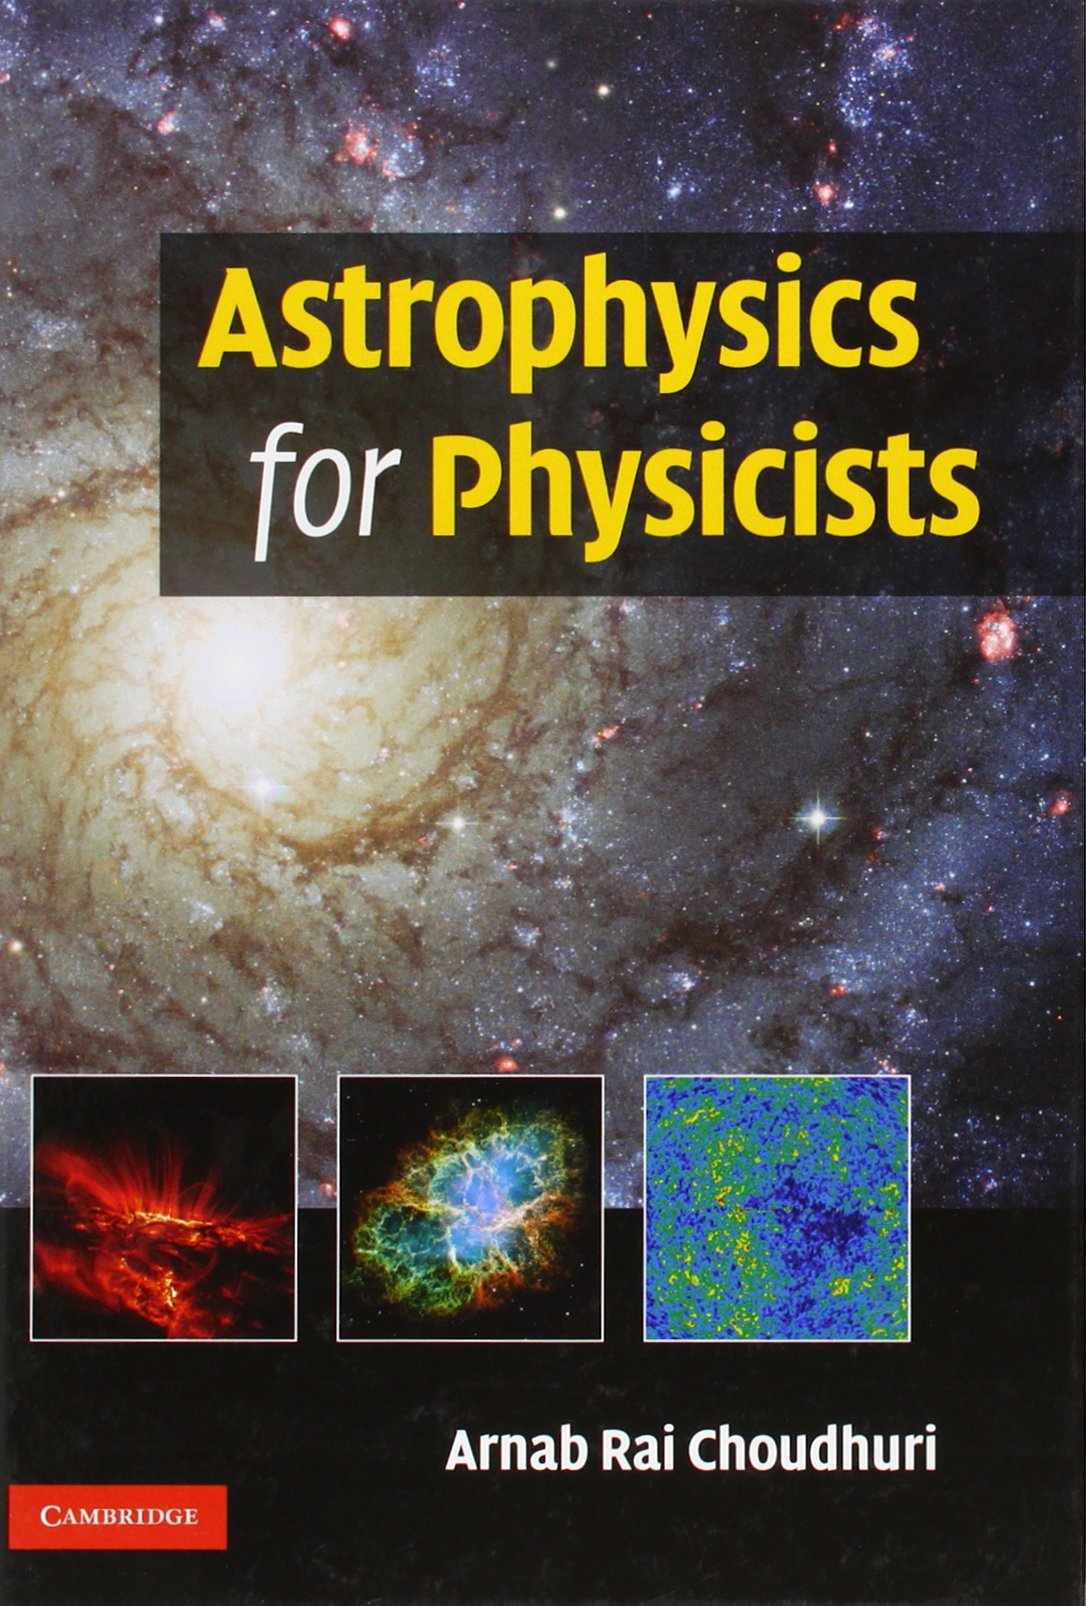 Buy Astrophysics for Physicists Book Online at Low Prices in India |  Astrophysics for Physicists Reviews & Ratings - Amazon.in